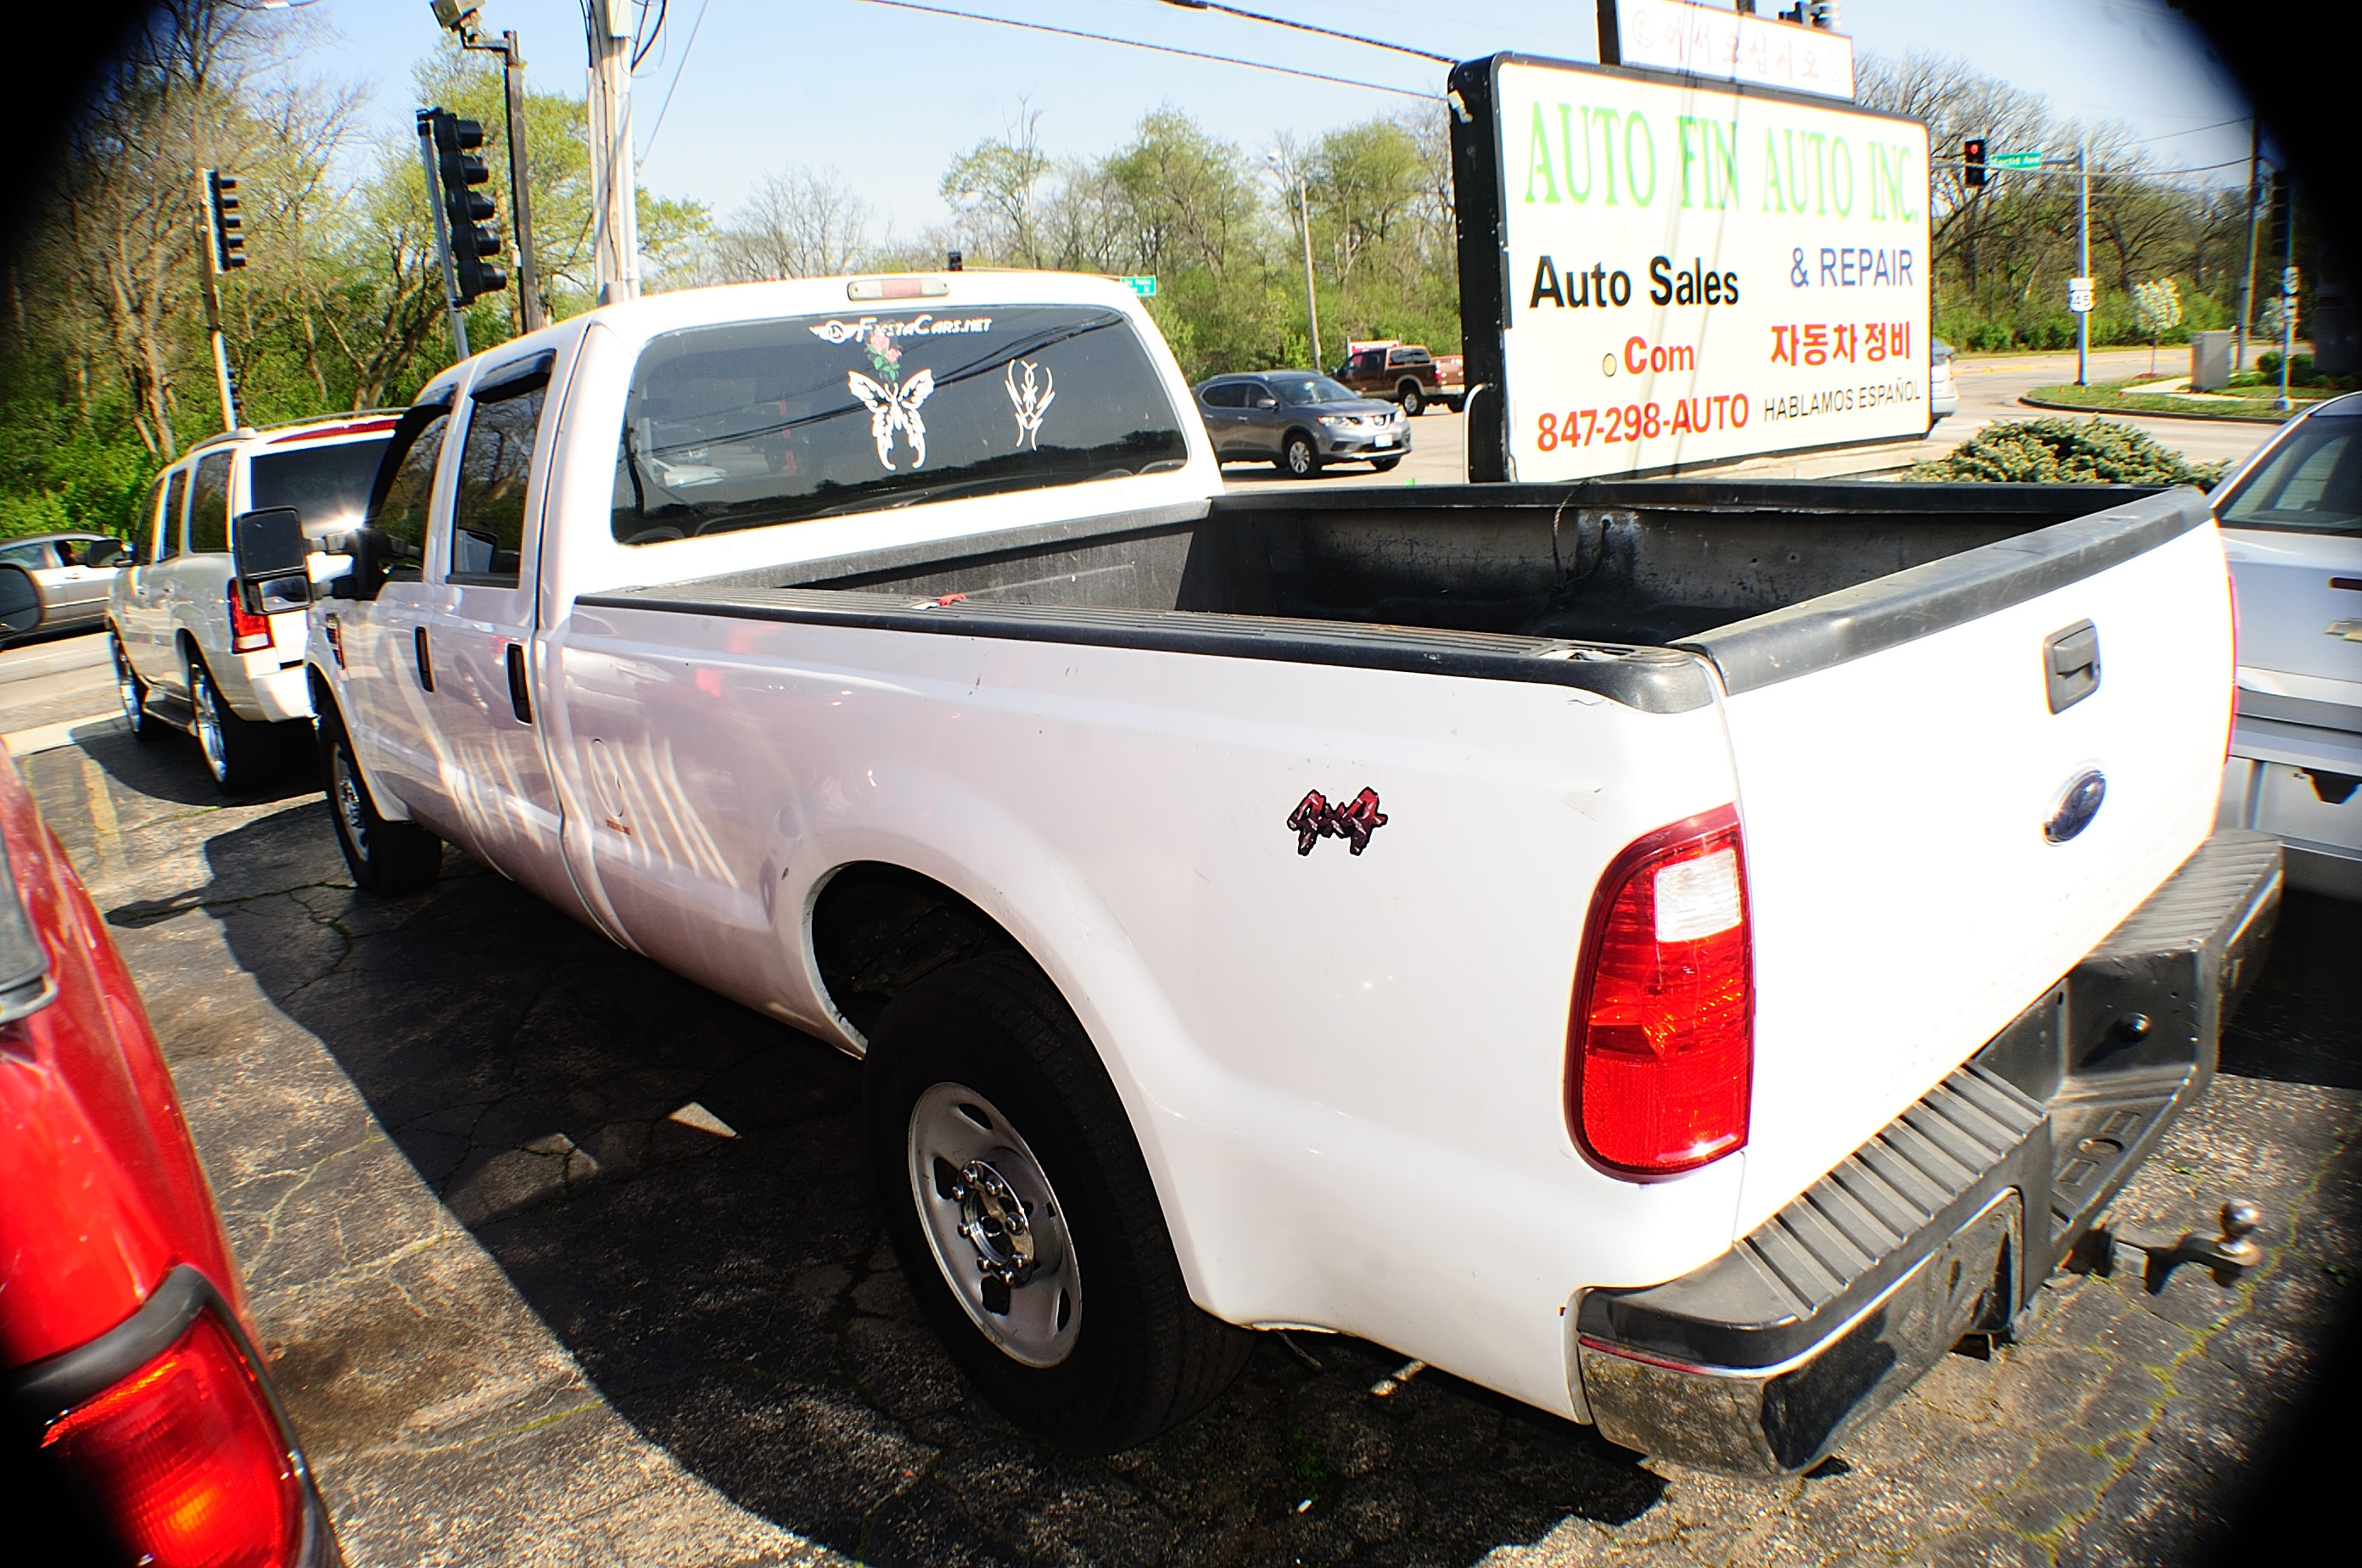 2008 Ford F250 White Crew 4x2 Diesel Truck sale Gurnee Hanover Park Hoffman Estates Lombard